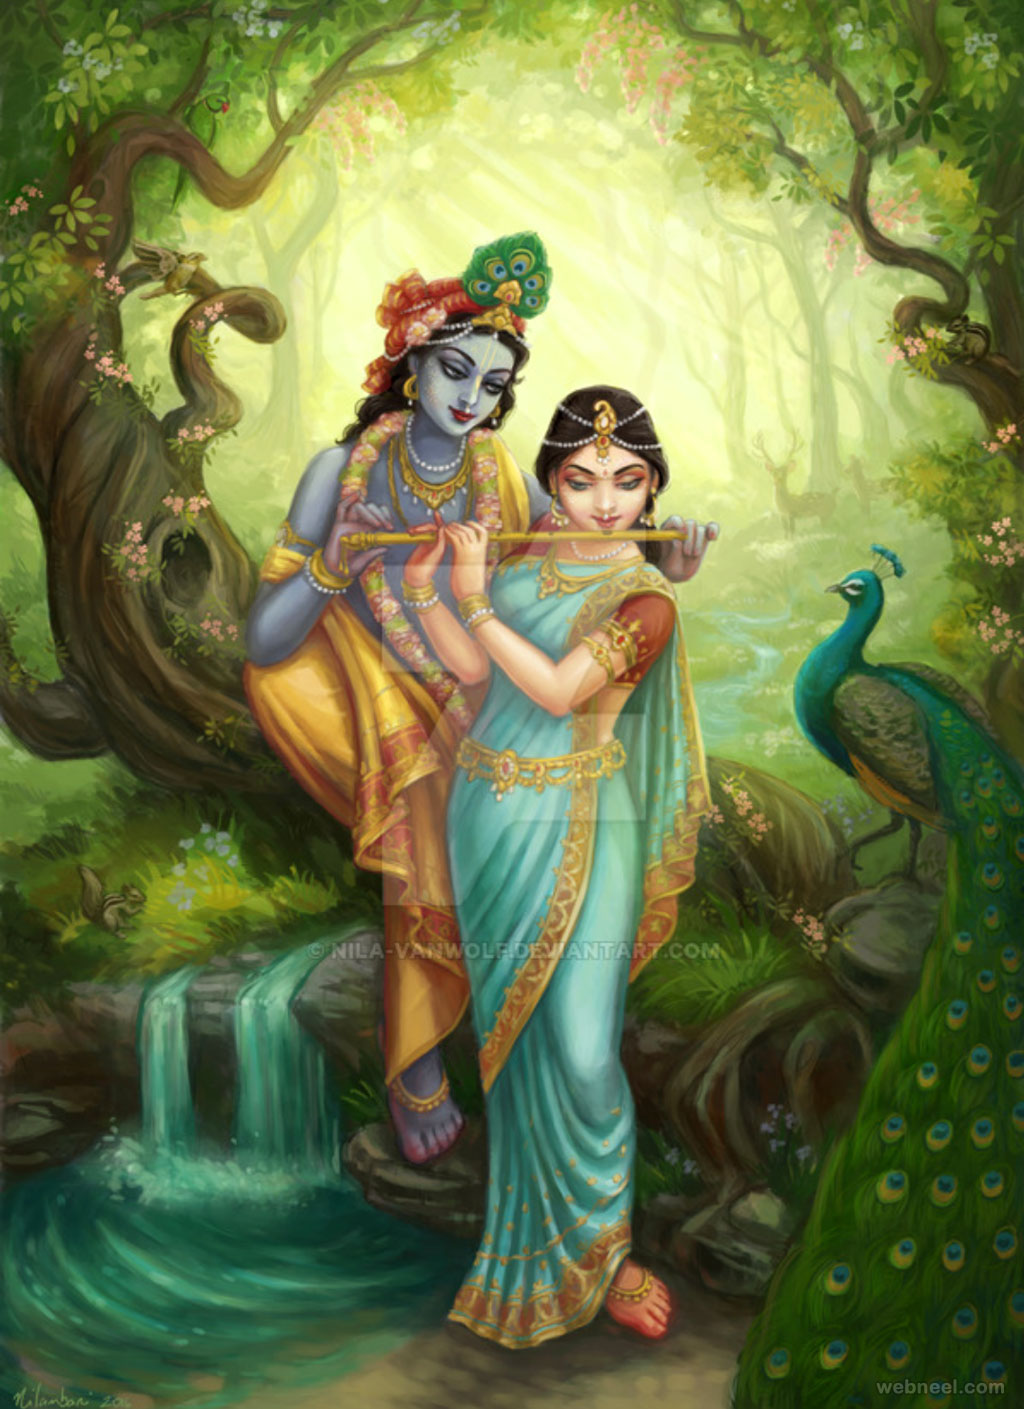 radha krishna indian painting by nilavanwolf